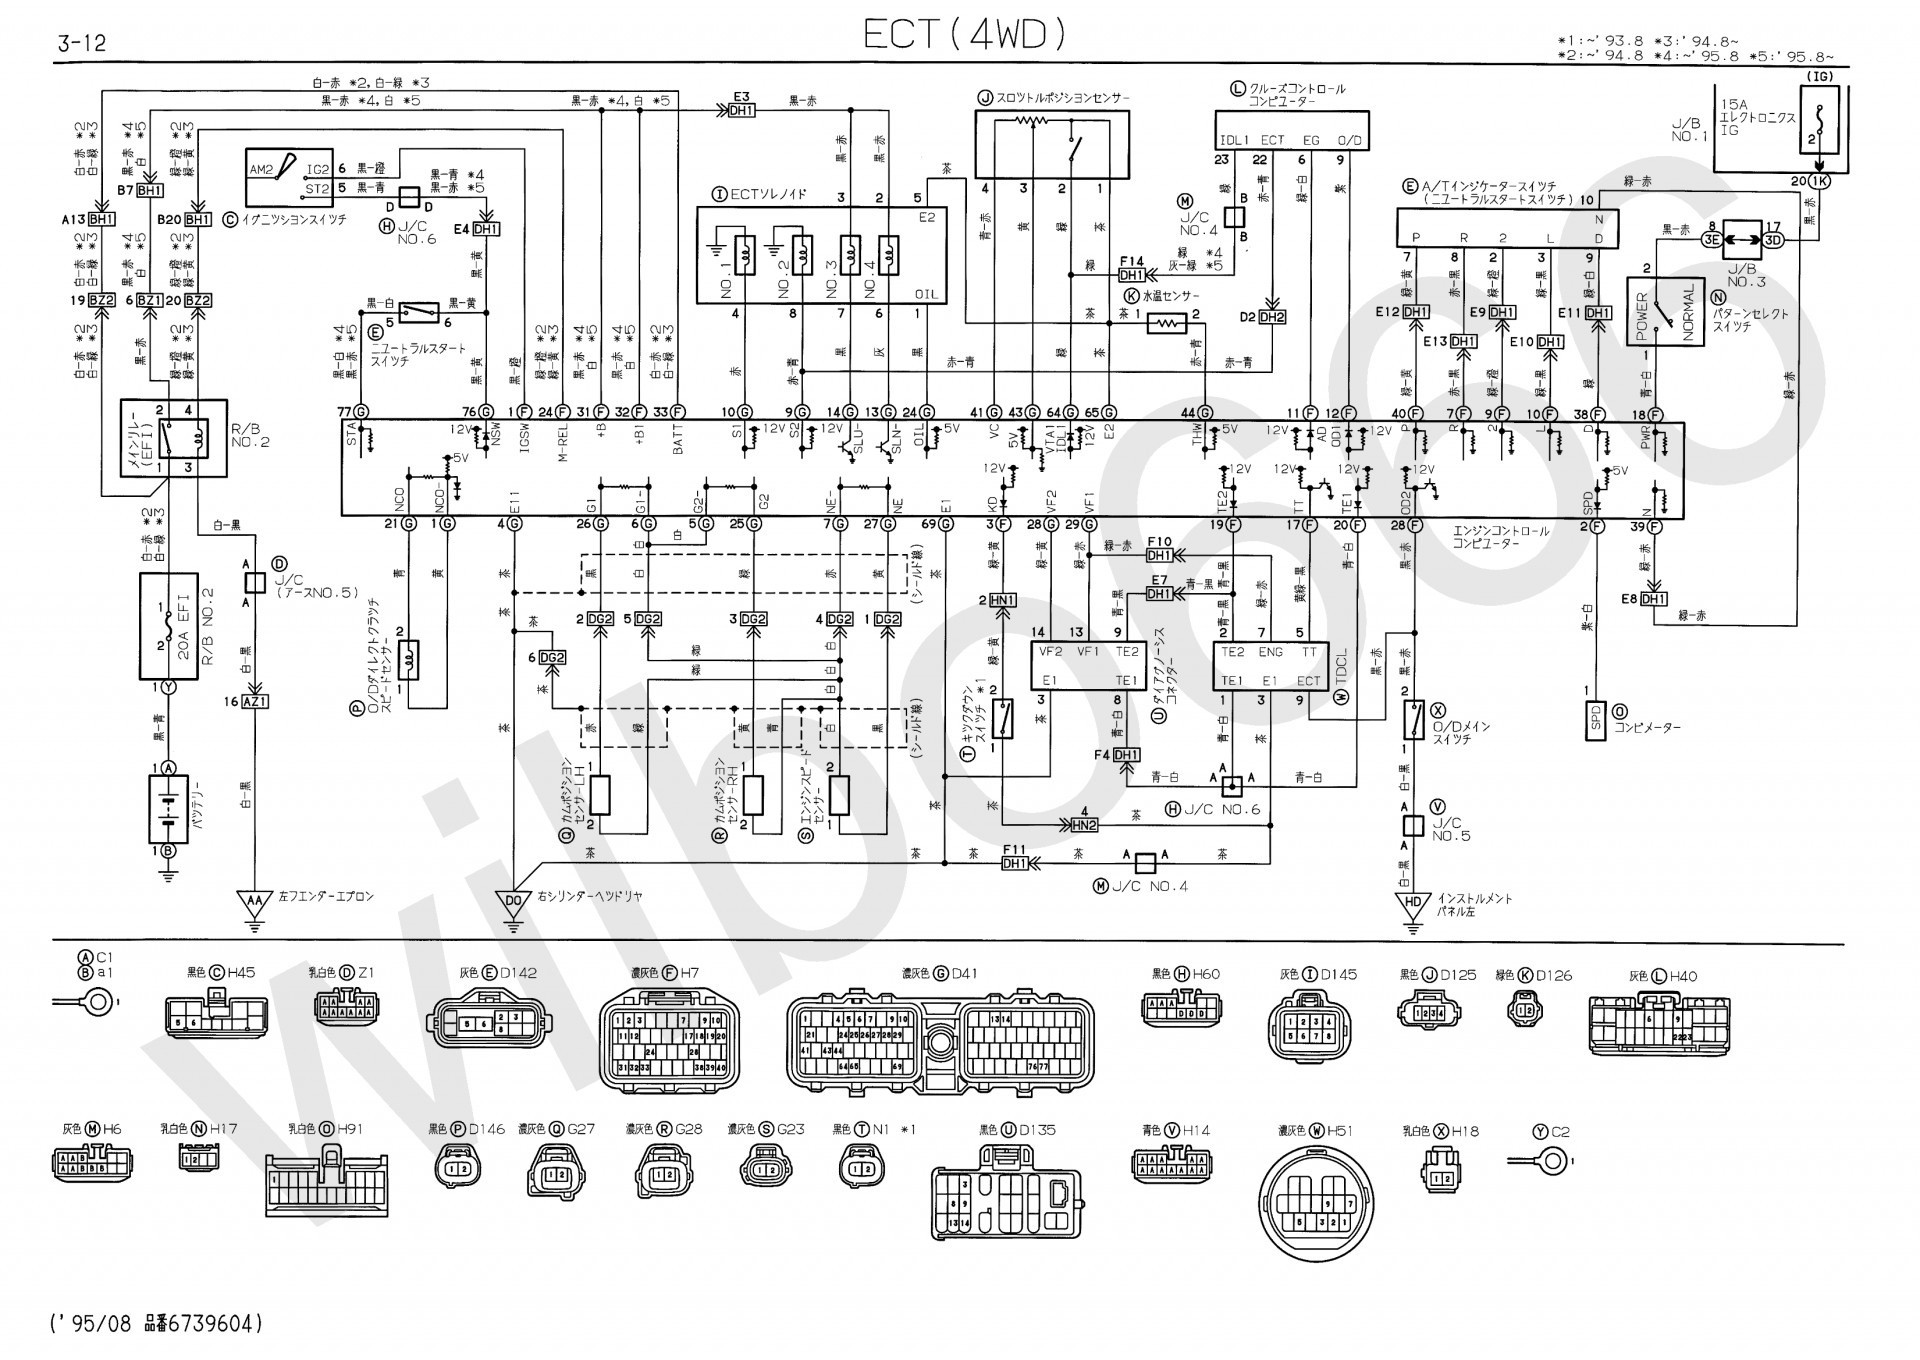 1993 Bmw 525i Engine Wiring Diagram - Block And Schematic Diagrams •